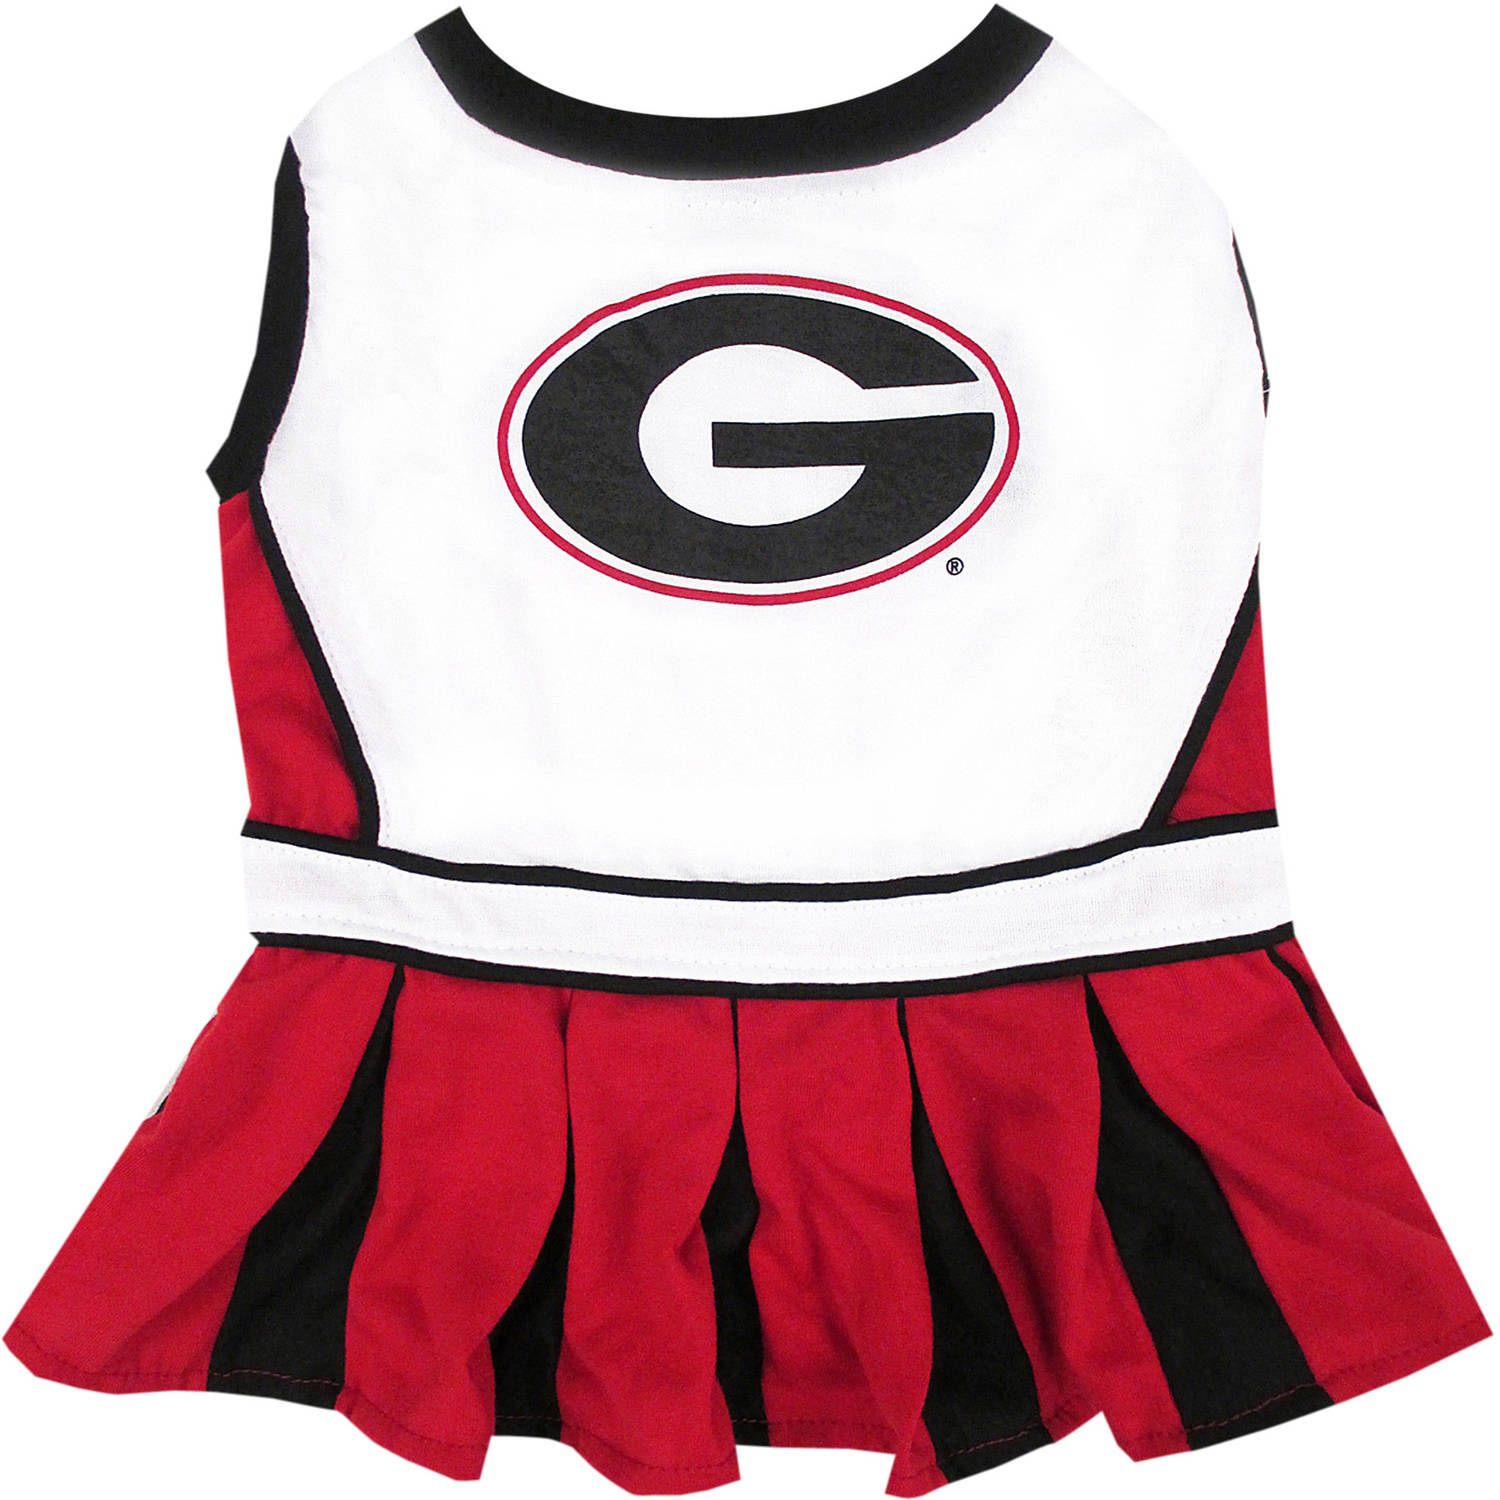 Pets First College Georgia Bulldogs Cheerleader, 3 Sizes Pet Dress Available. Licensed Dog Outfit